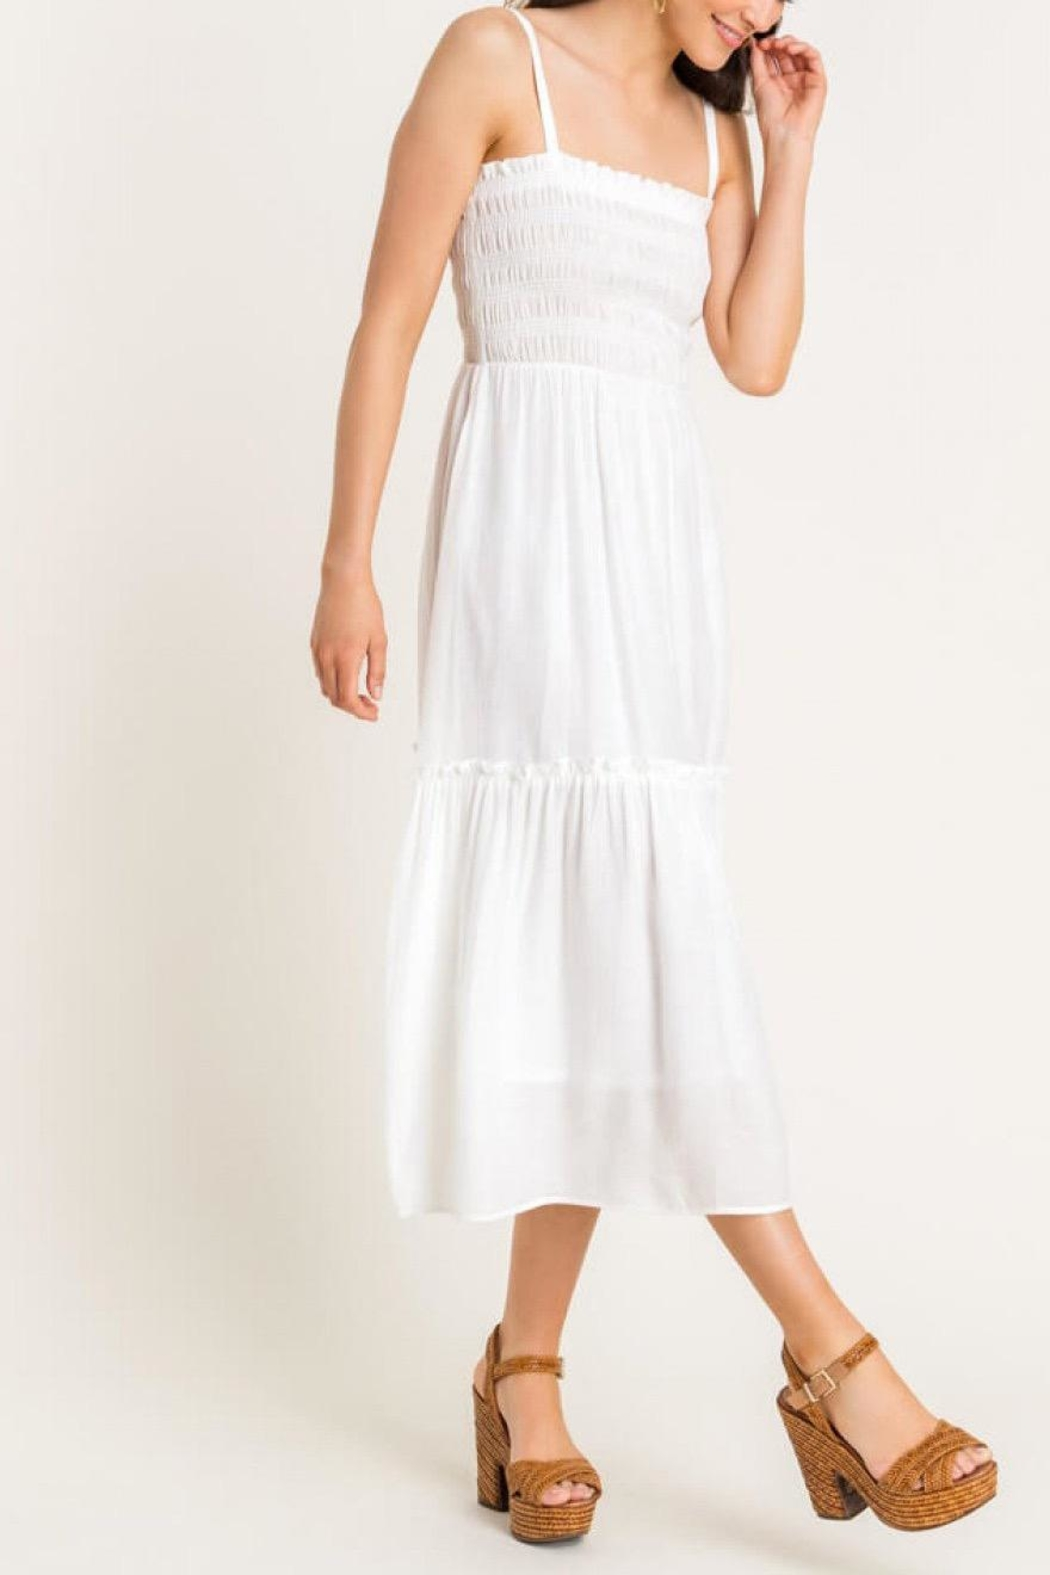 Lush Clothing  Cami Tiered Midi-Dress - Side Cropped Image